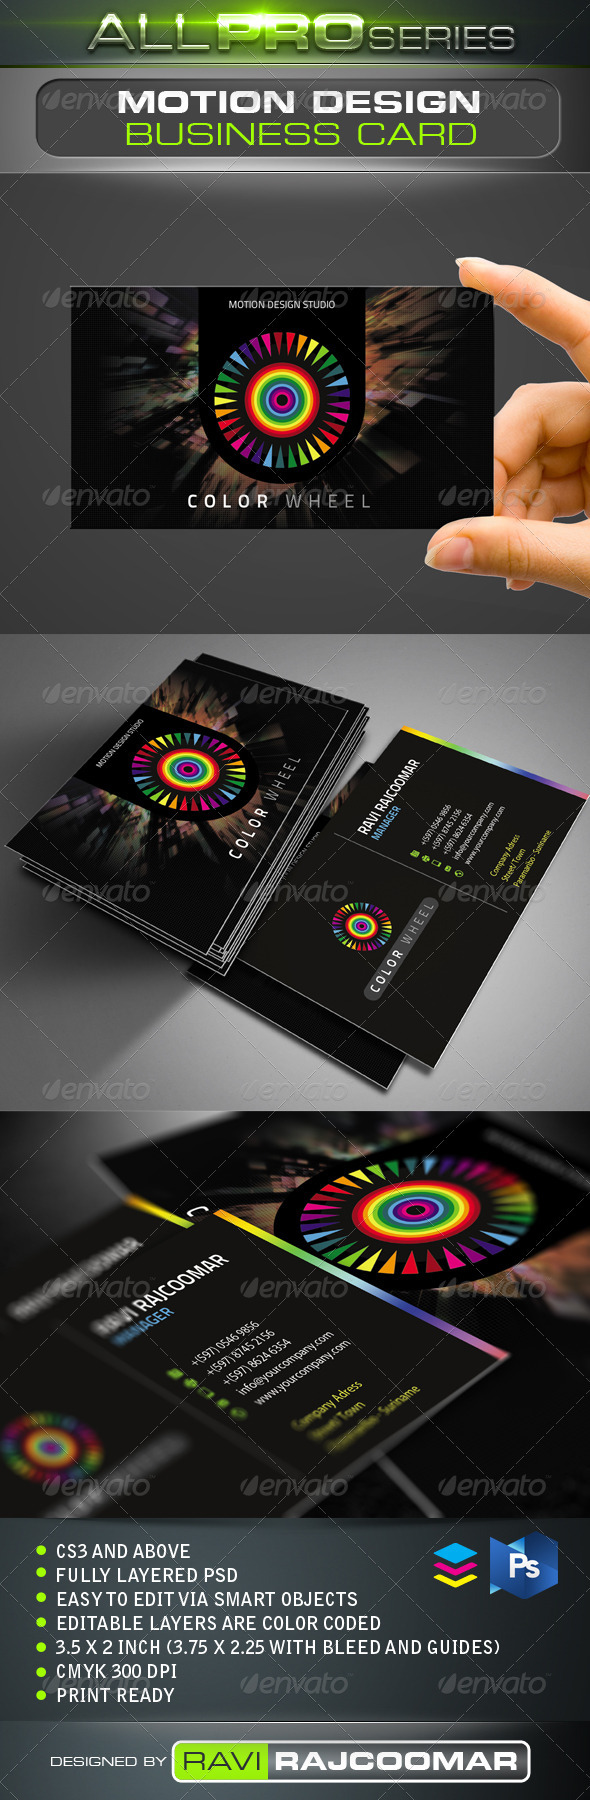 Motion Design Business Card - Creative Business Cards